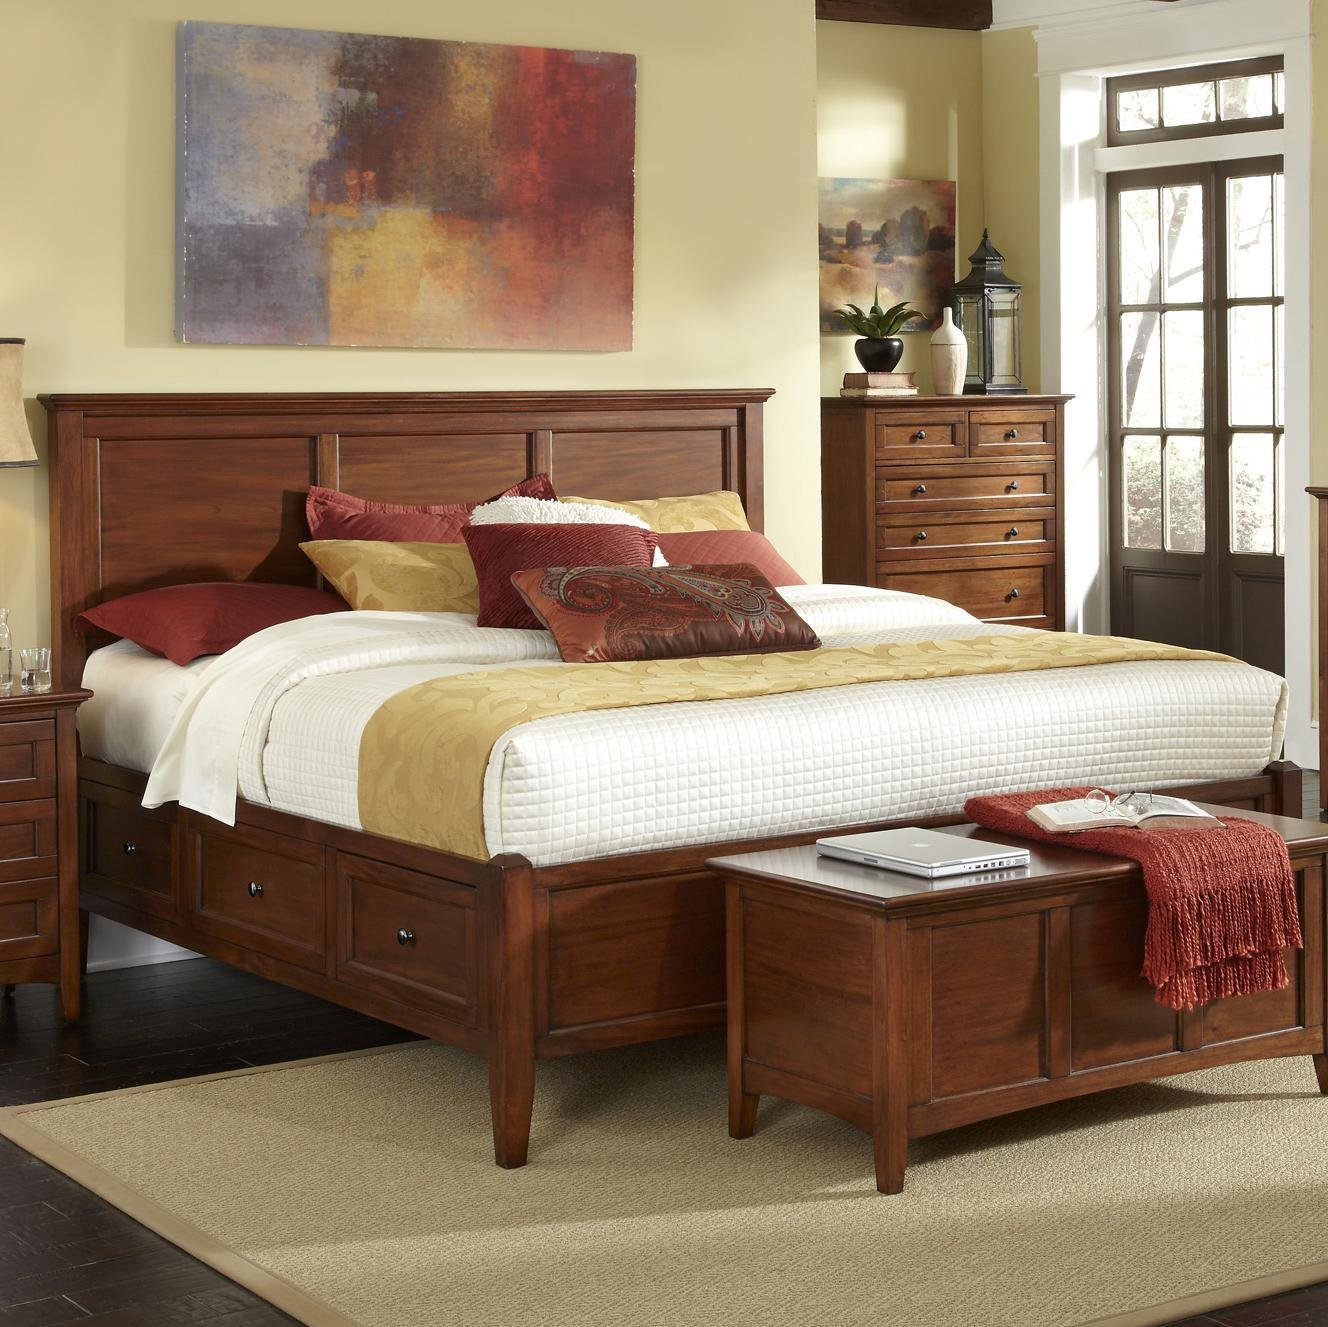 Best Transitional Queen Bed With 6 Storage Drawers By Aamerica Wolf Furniture With Pictures